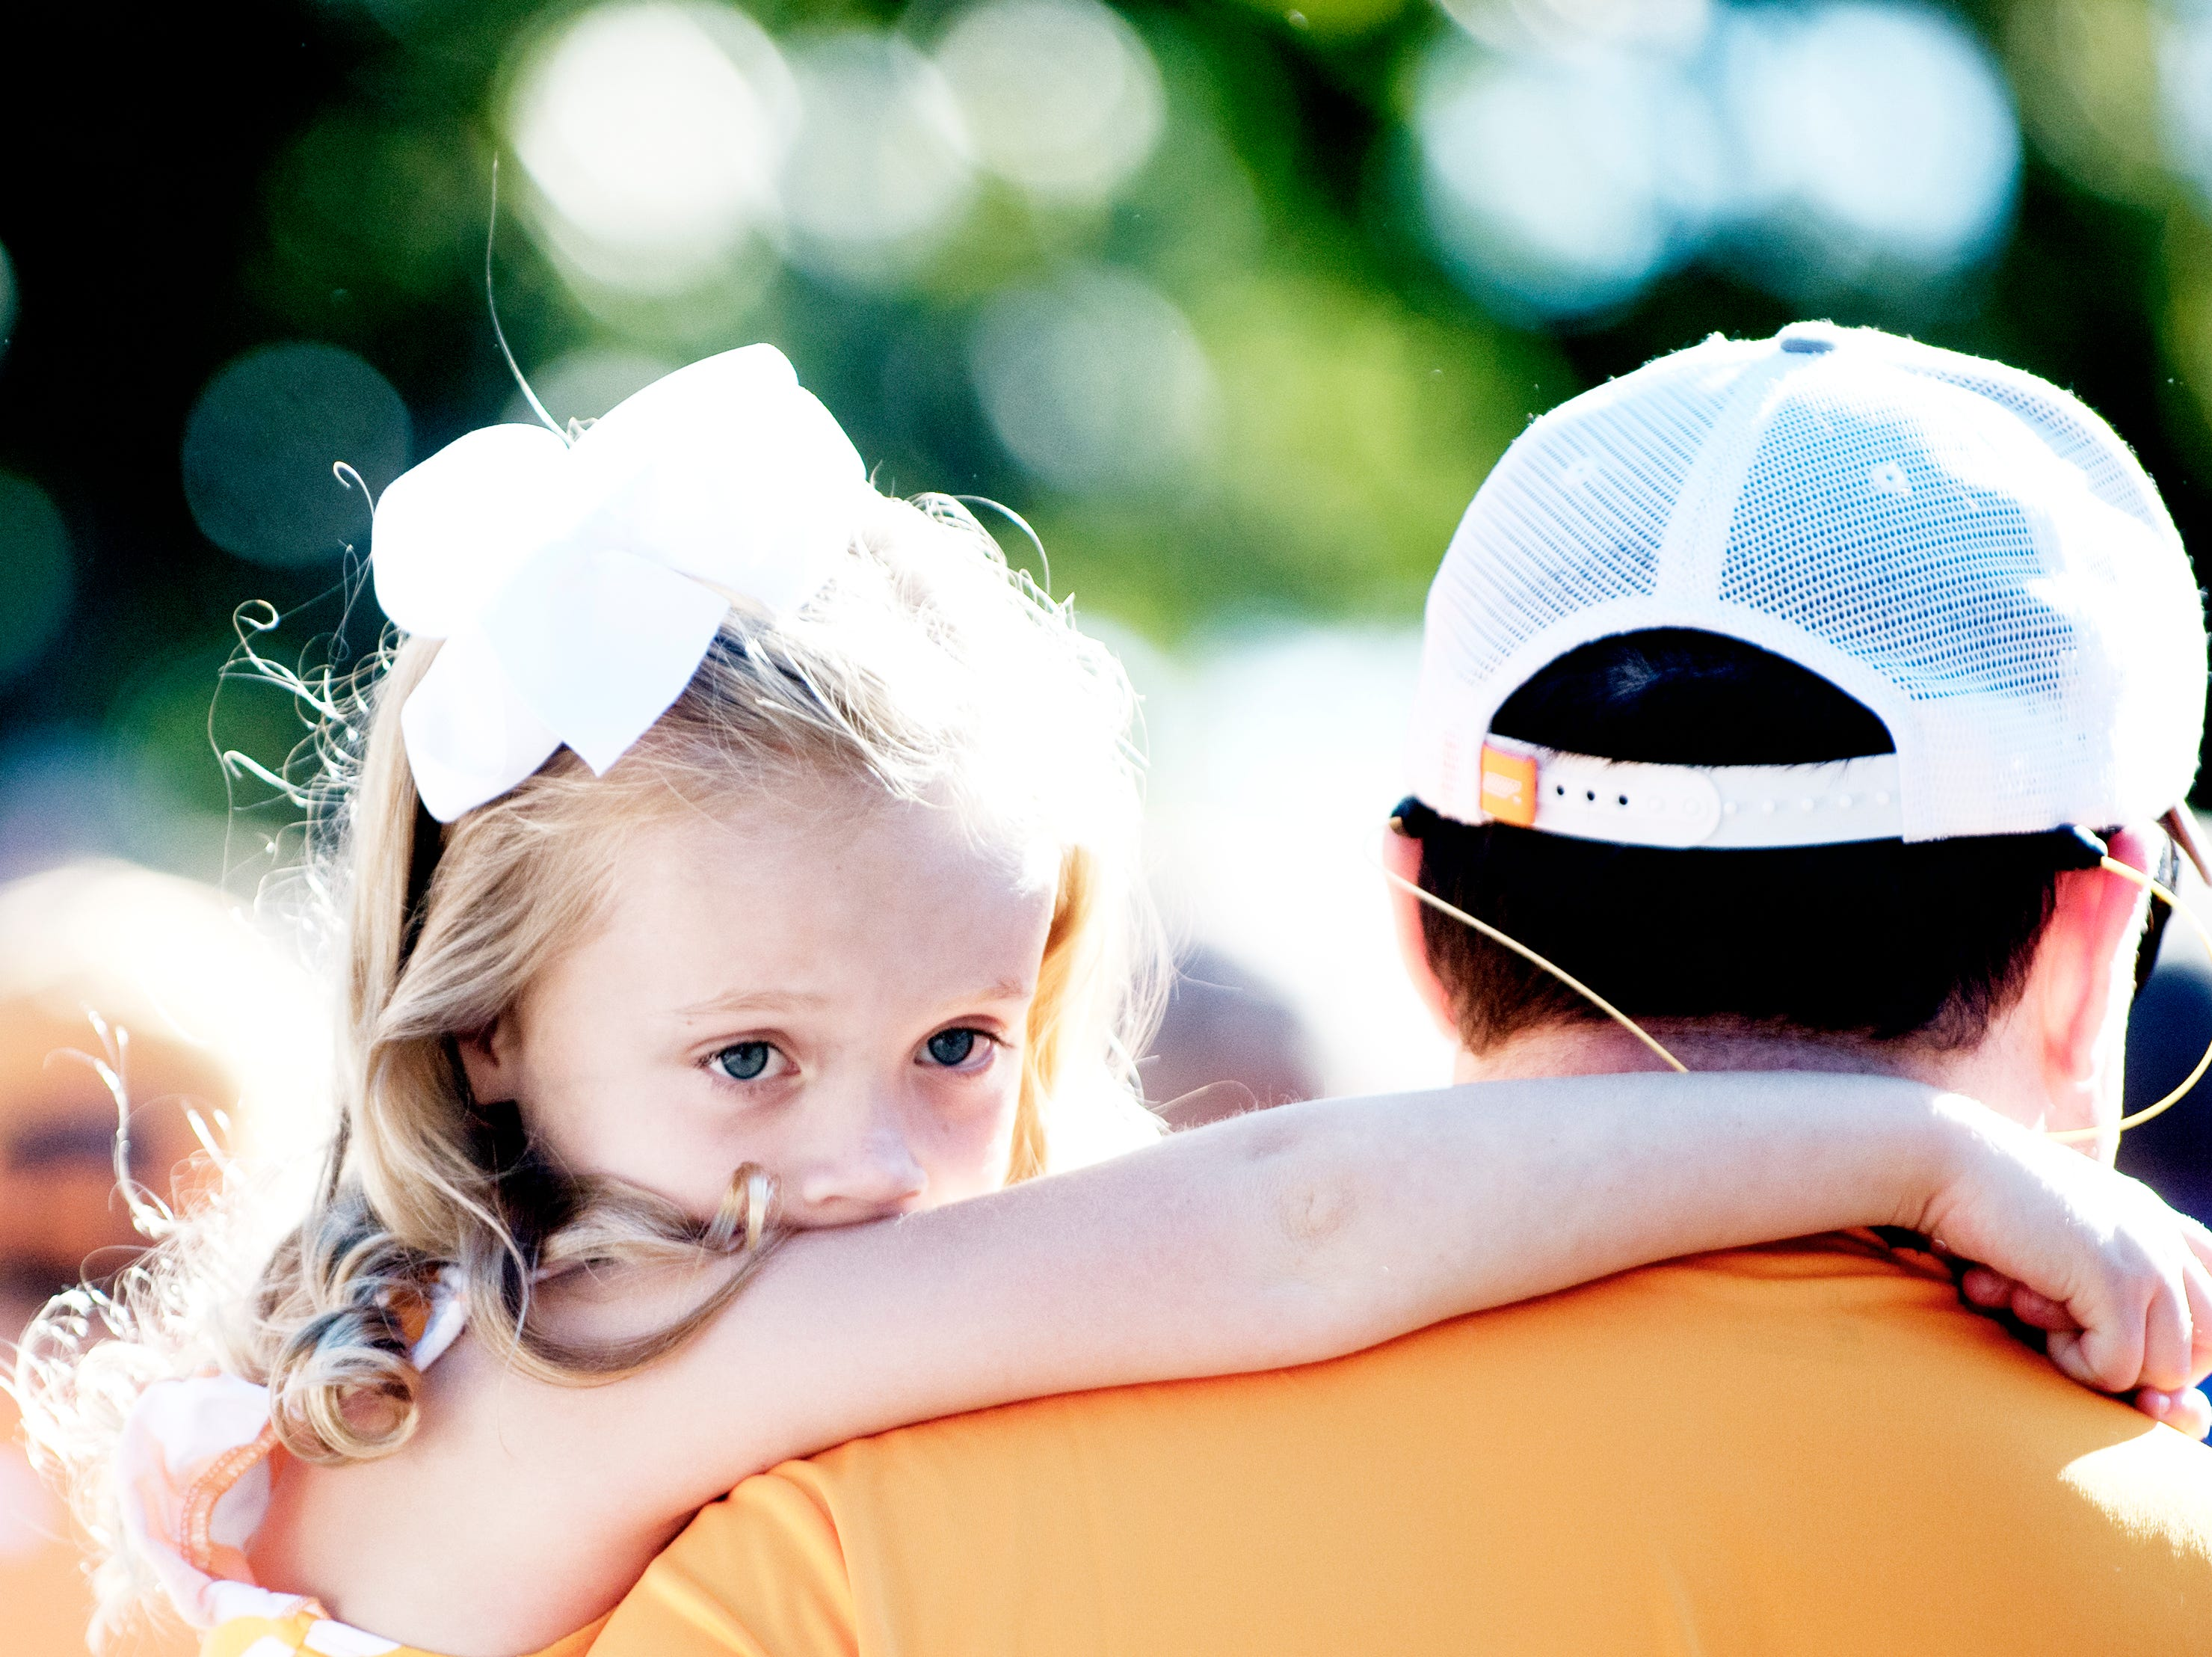 A young Vol fan rests on the shoulders of her father during a game between Tennessee and Auburn at Jordan-Hare Stadium in Auburn, Alabama on Saturday, October 13, 2018.